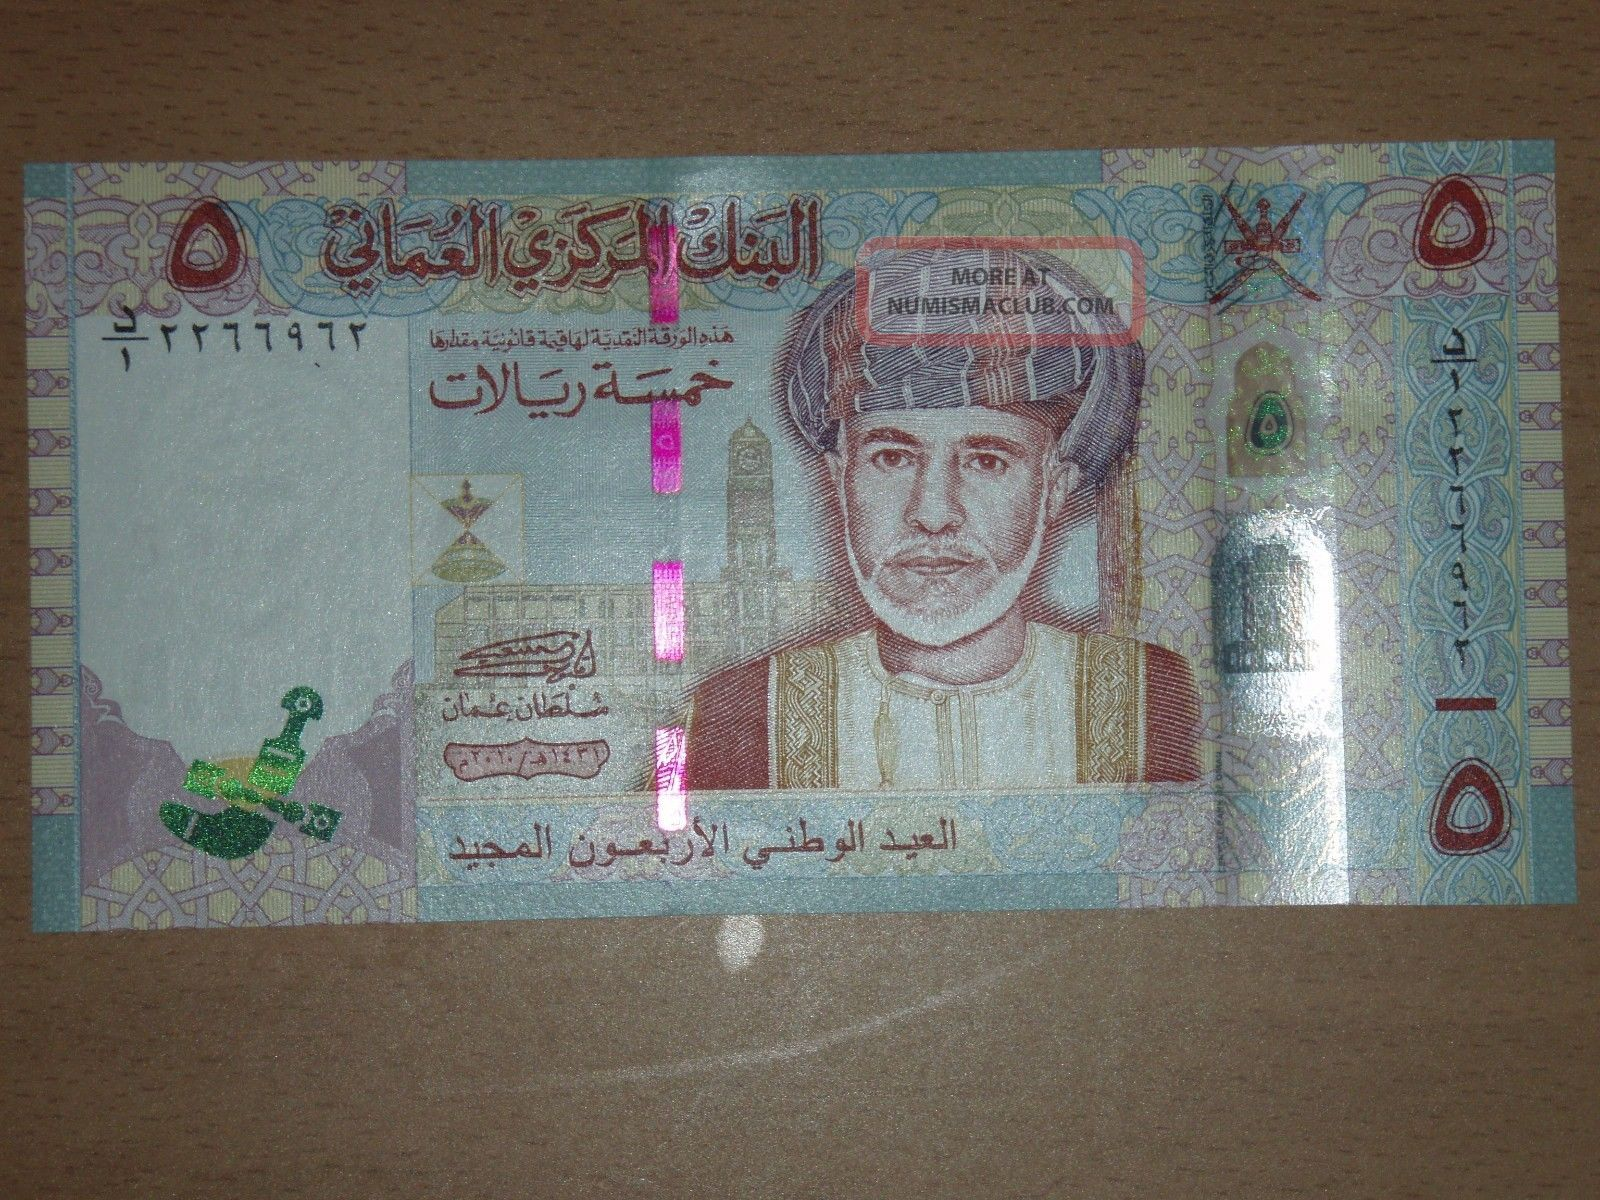 Oman 5 Rials Unc Middle East photo